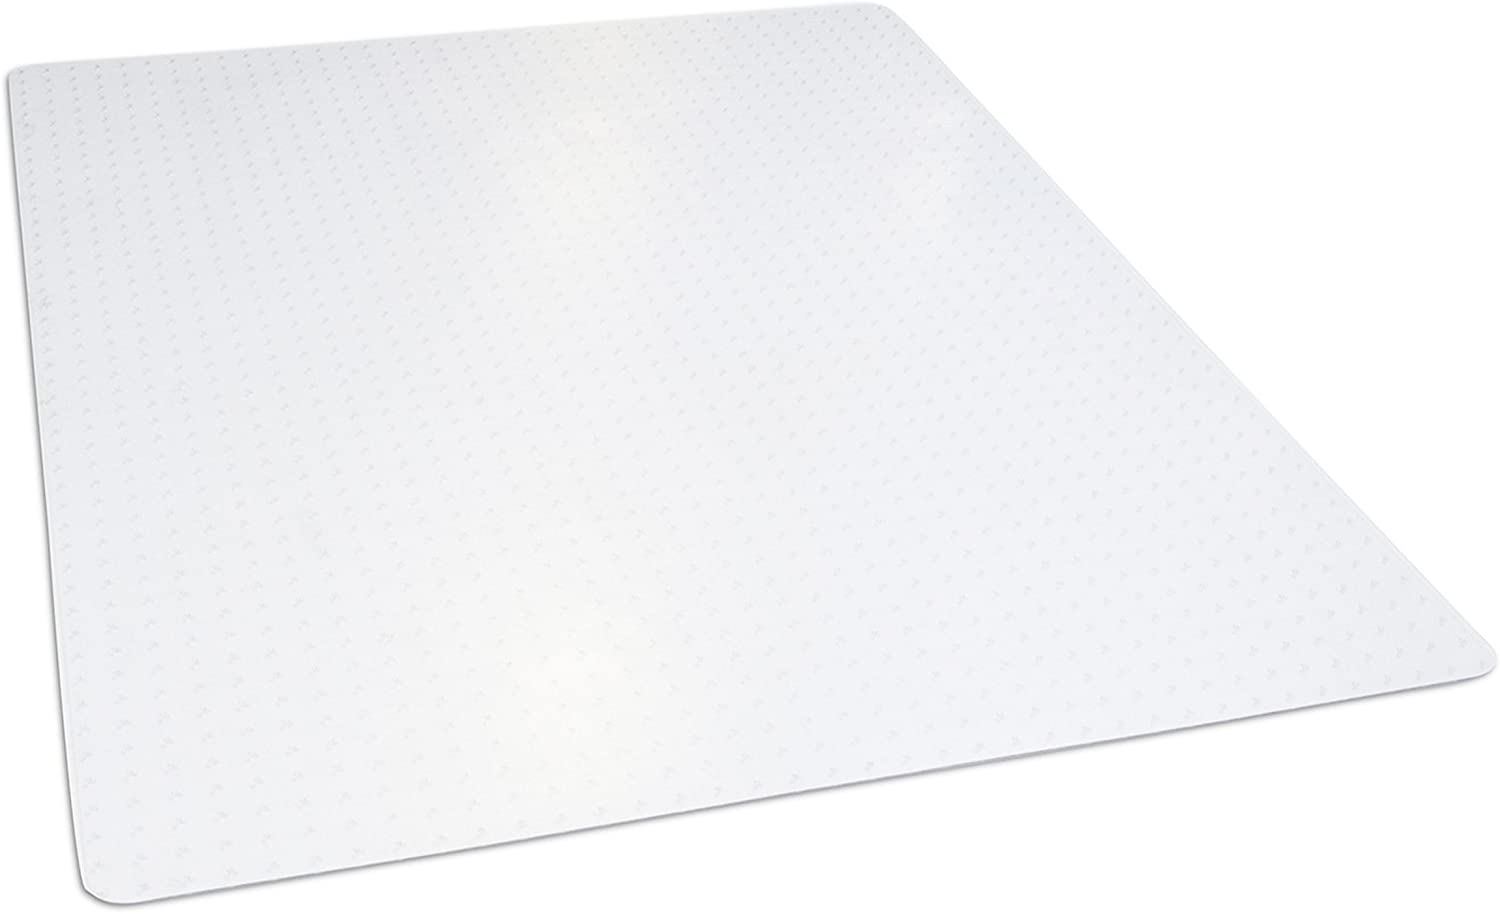 """Dimex 46""""x 60"""" Clear Rectangle Office Chair Mat For Low And Medium Pile Carpet, Made In The USA, BPA And Phthalate Free, C532001J : Office Products"""